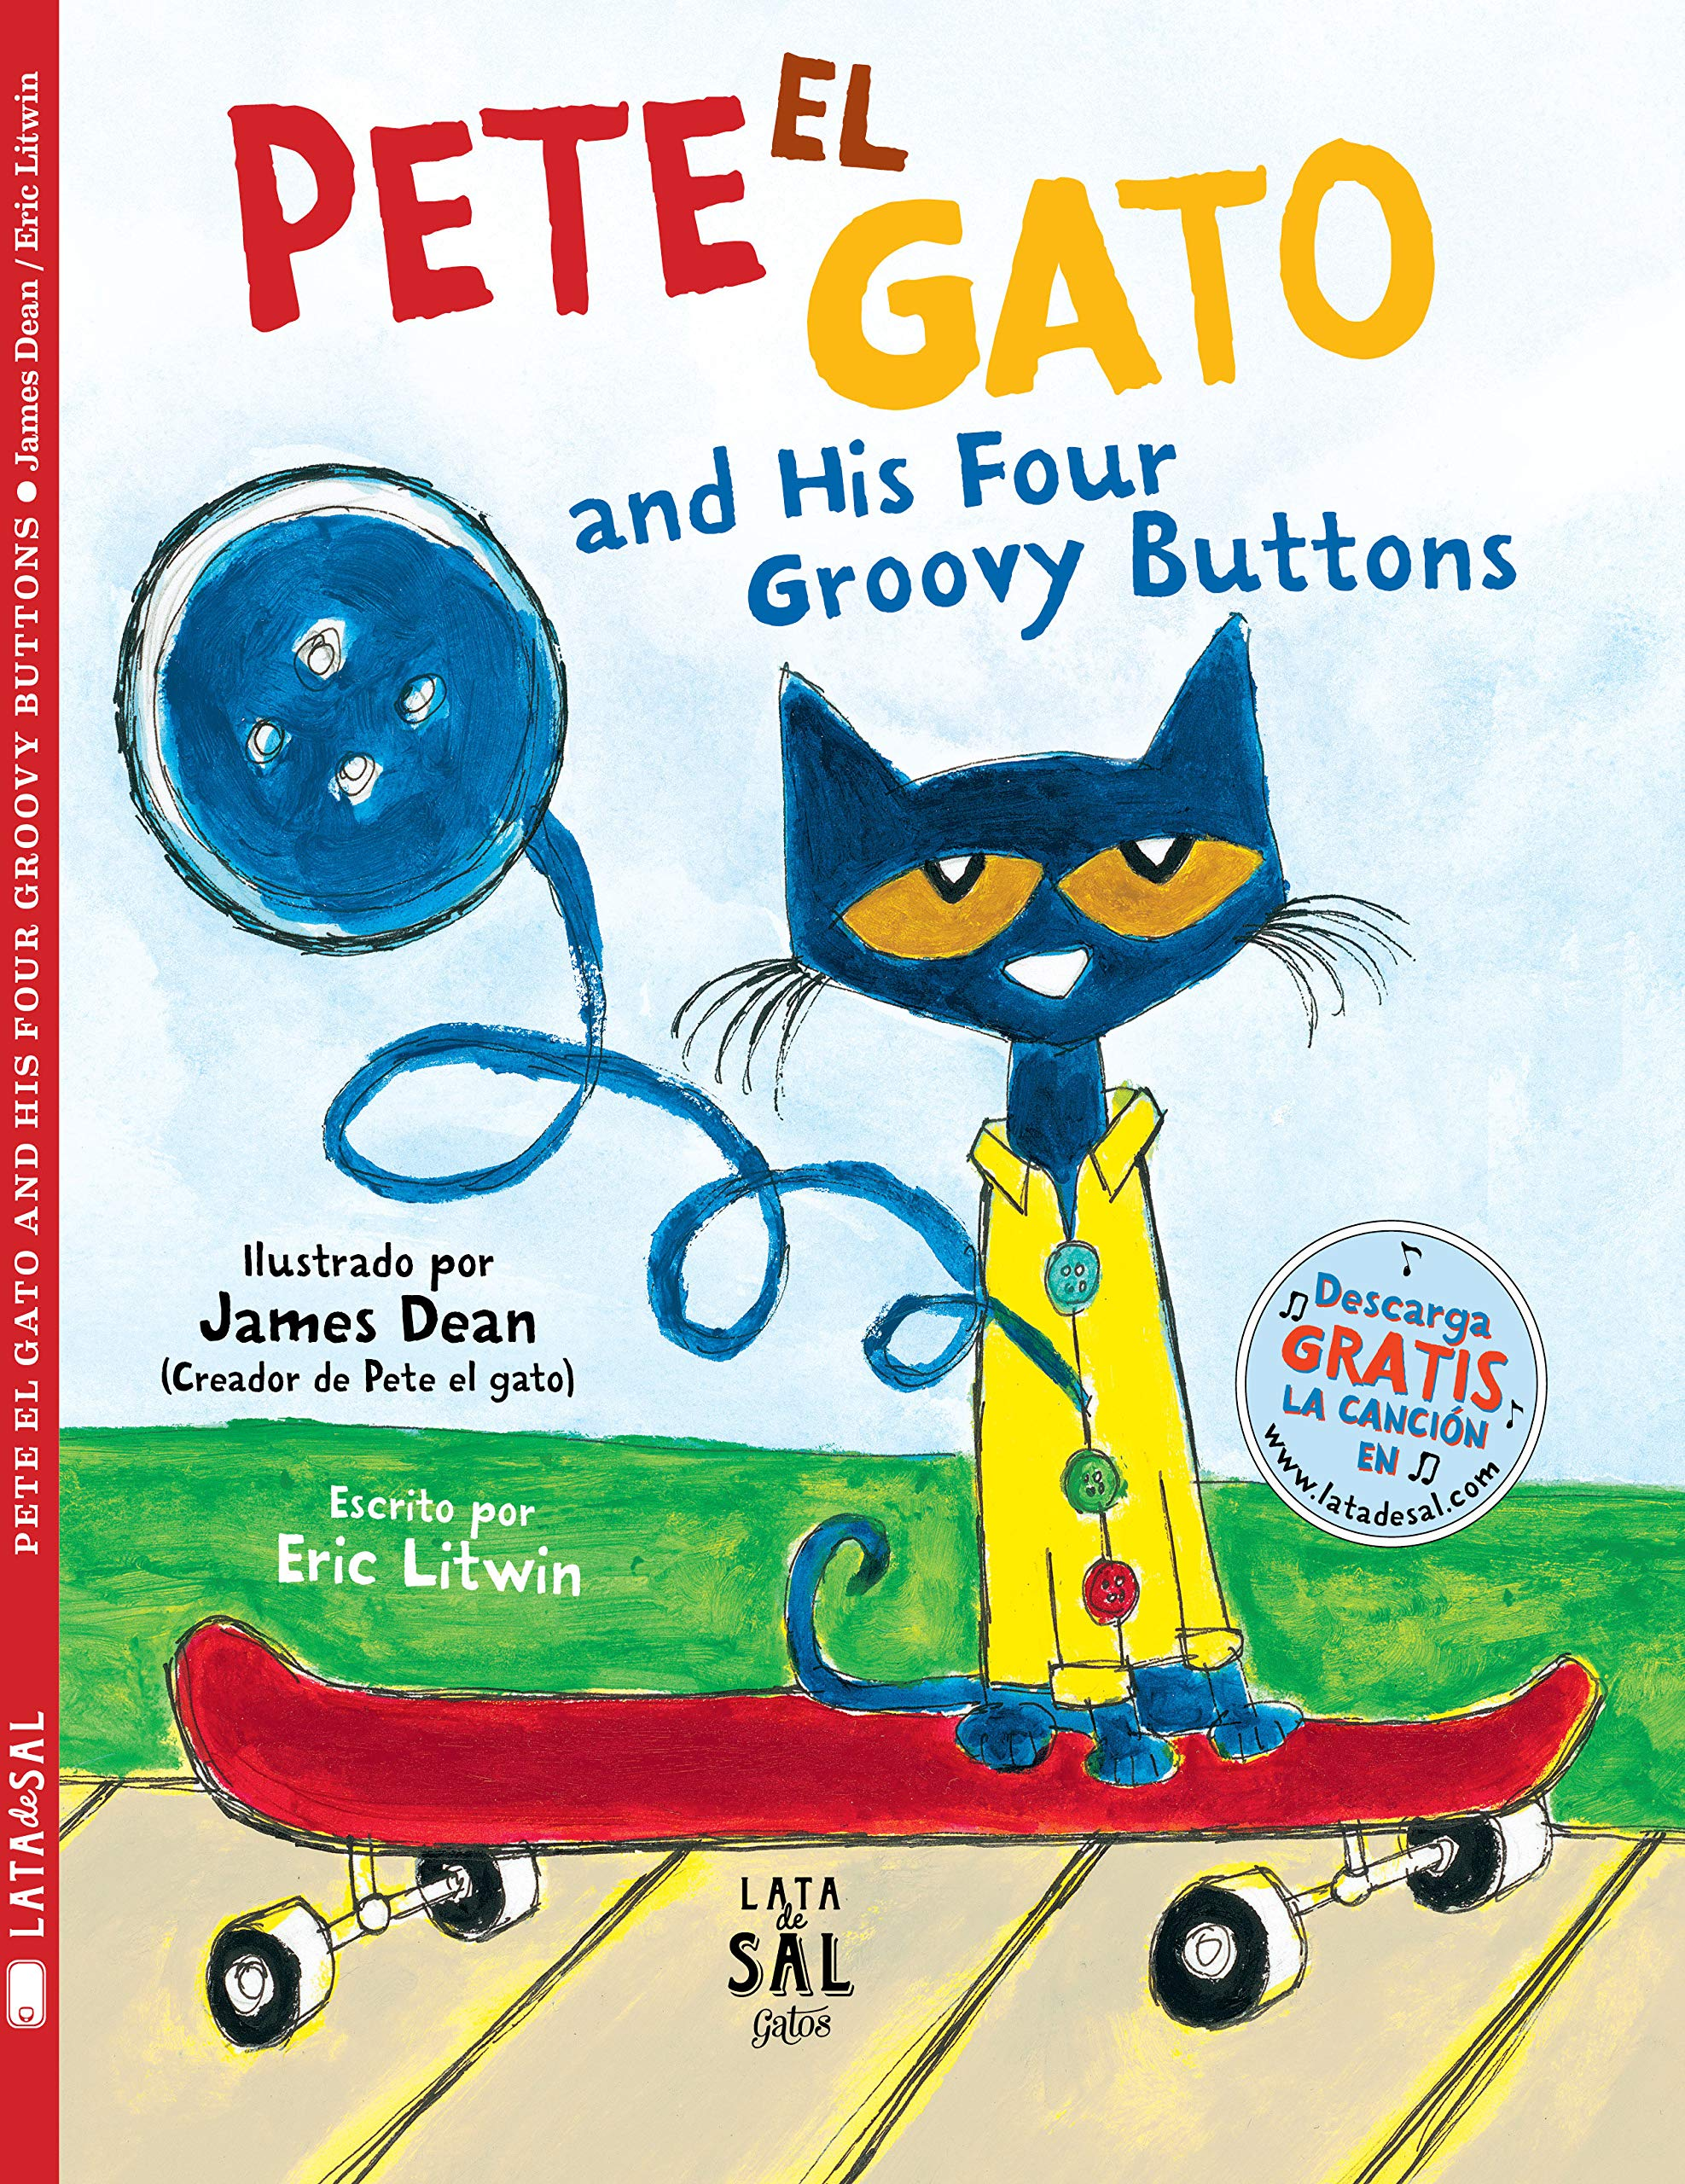 Amazon.com: Pete el gato and his four groovy buttons (Colección ...